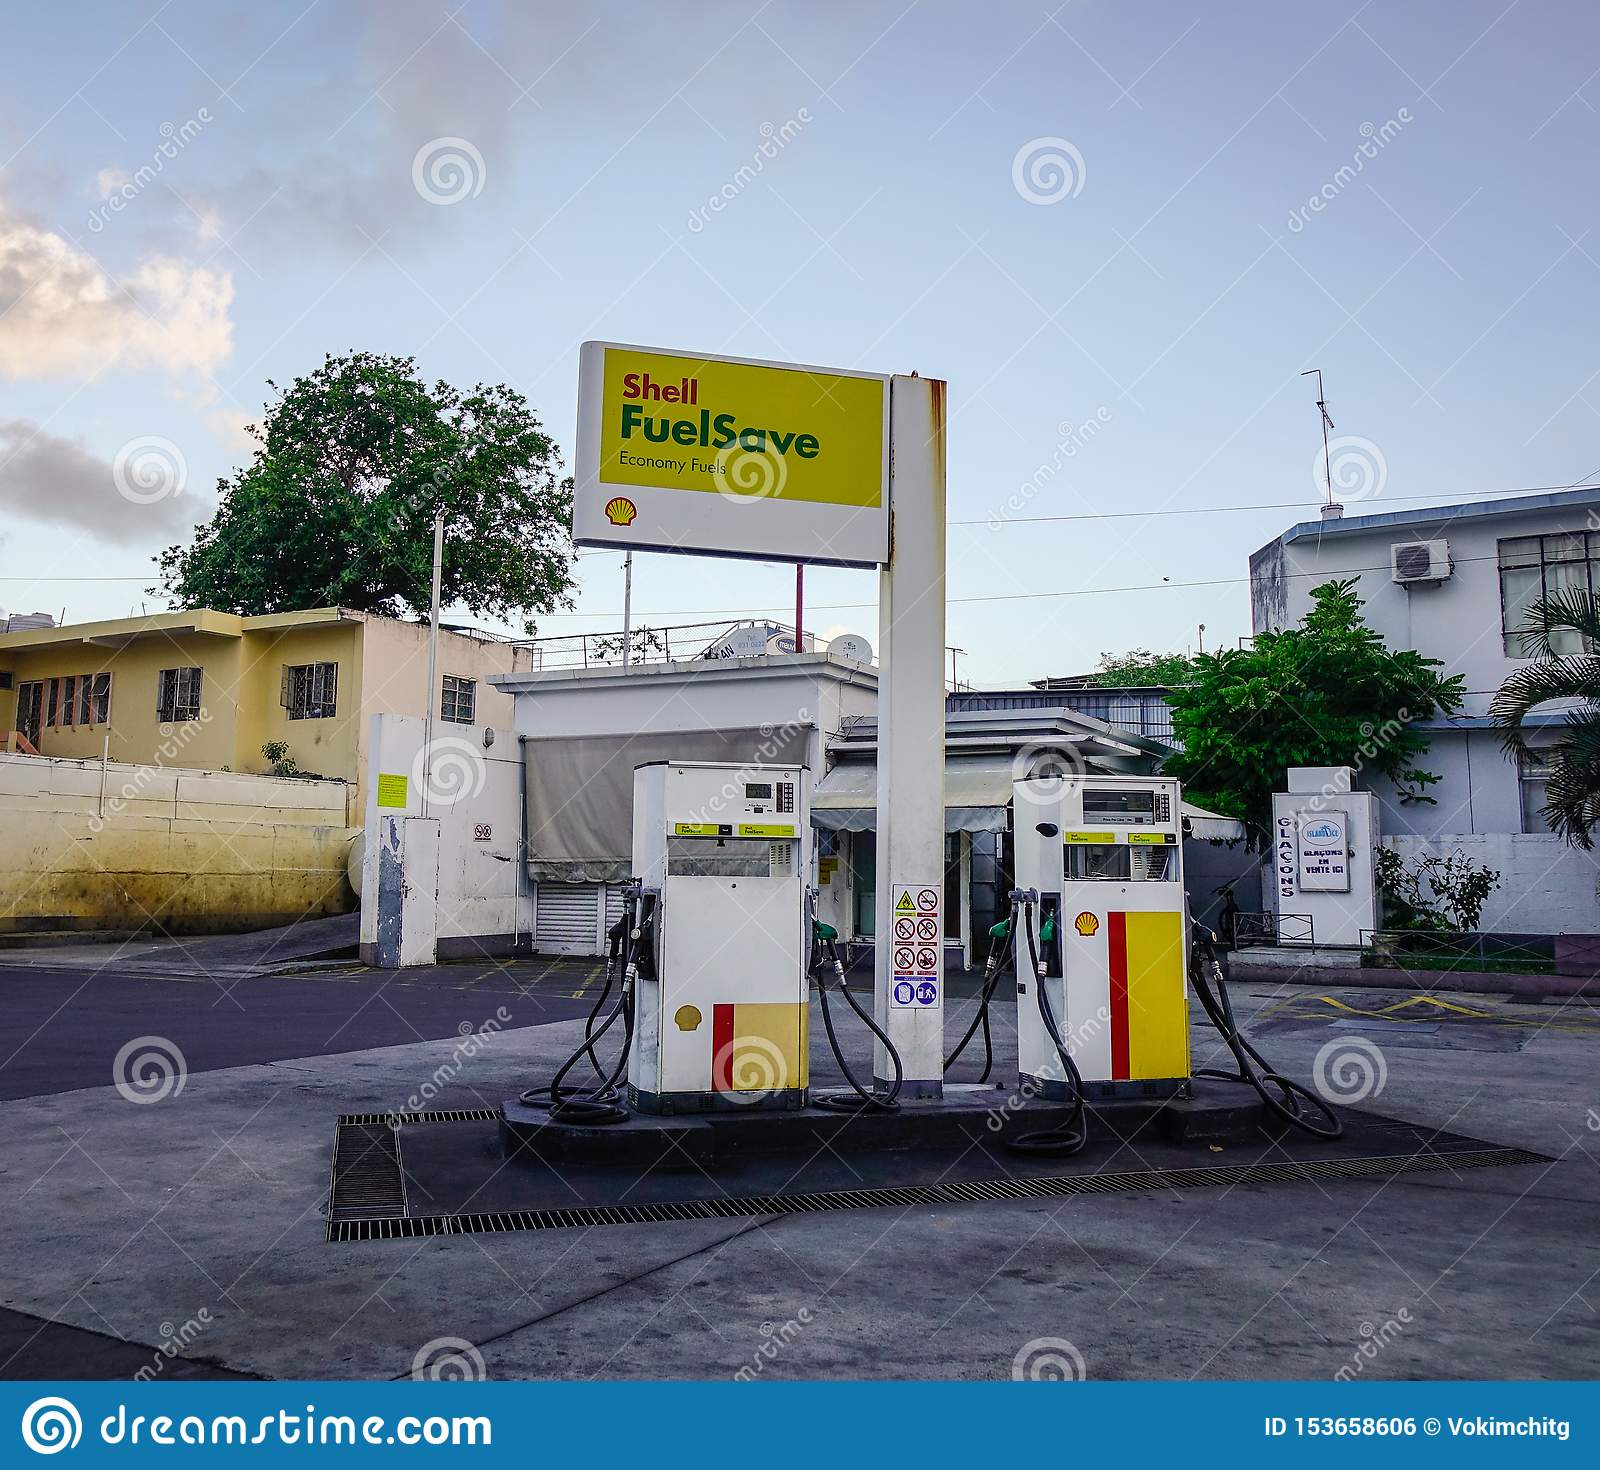 Abandoned Gasoline Station In Mauritius Editorial Photo Image Of Restaurant Highway 153658606